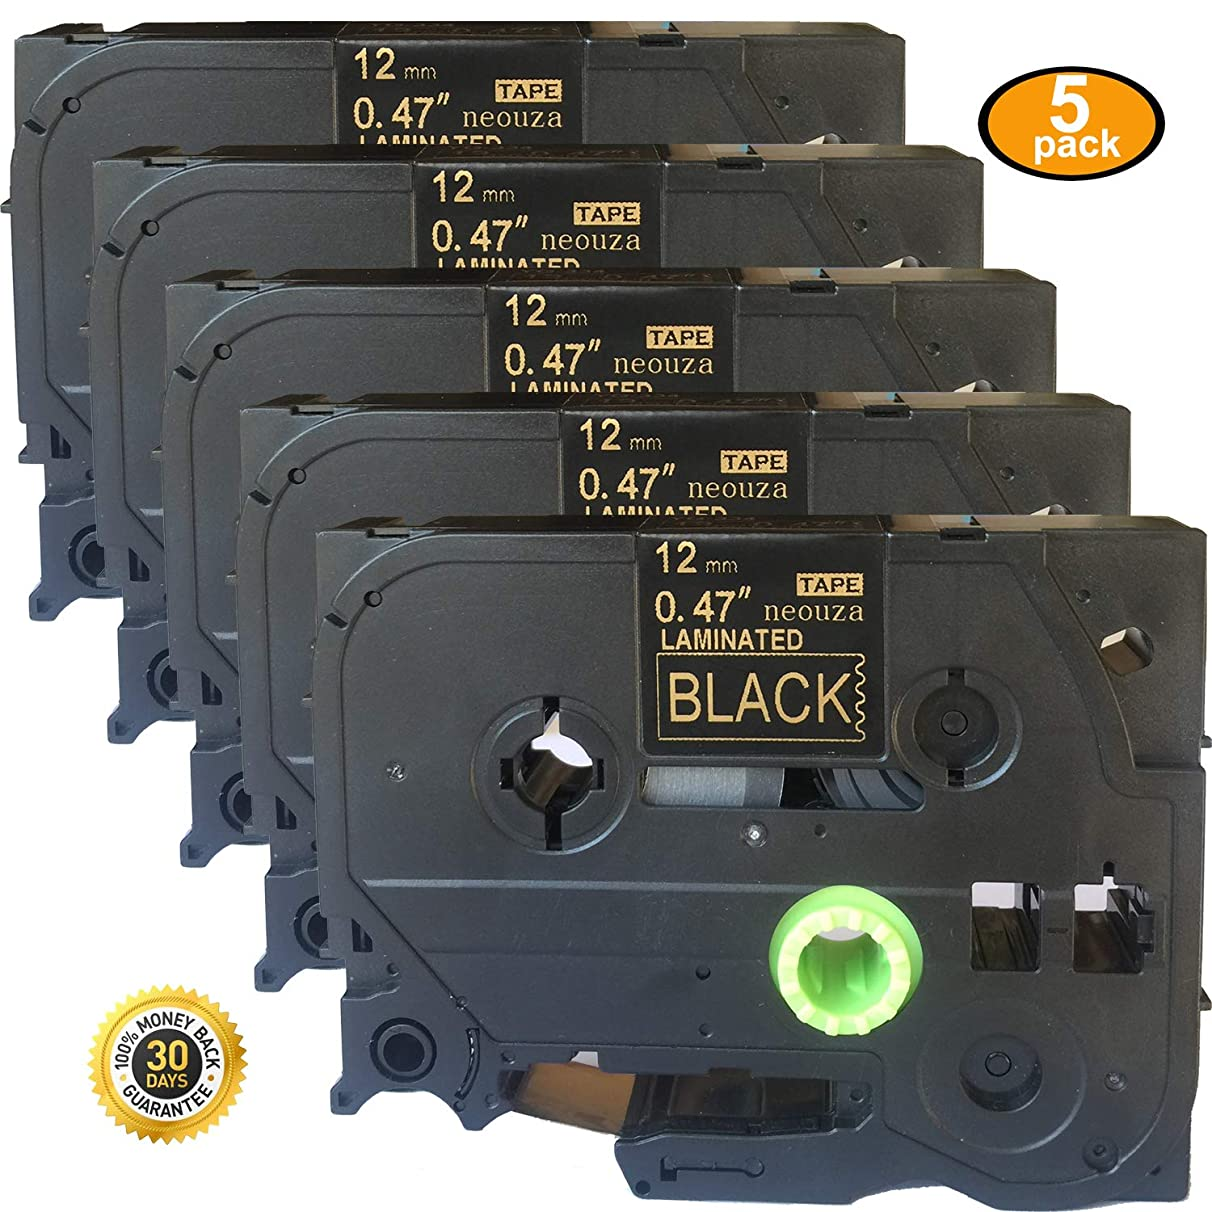 NEOUZA 5PK Great Quality Compatible for Brother P-Touch Laminated Tze Tz Label Tape Cartridge 12mmx8m (TZe-334 Gold on Black)